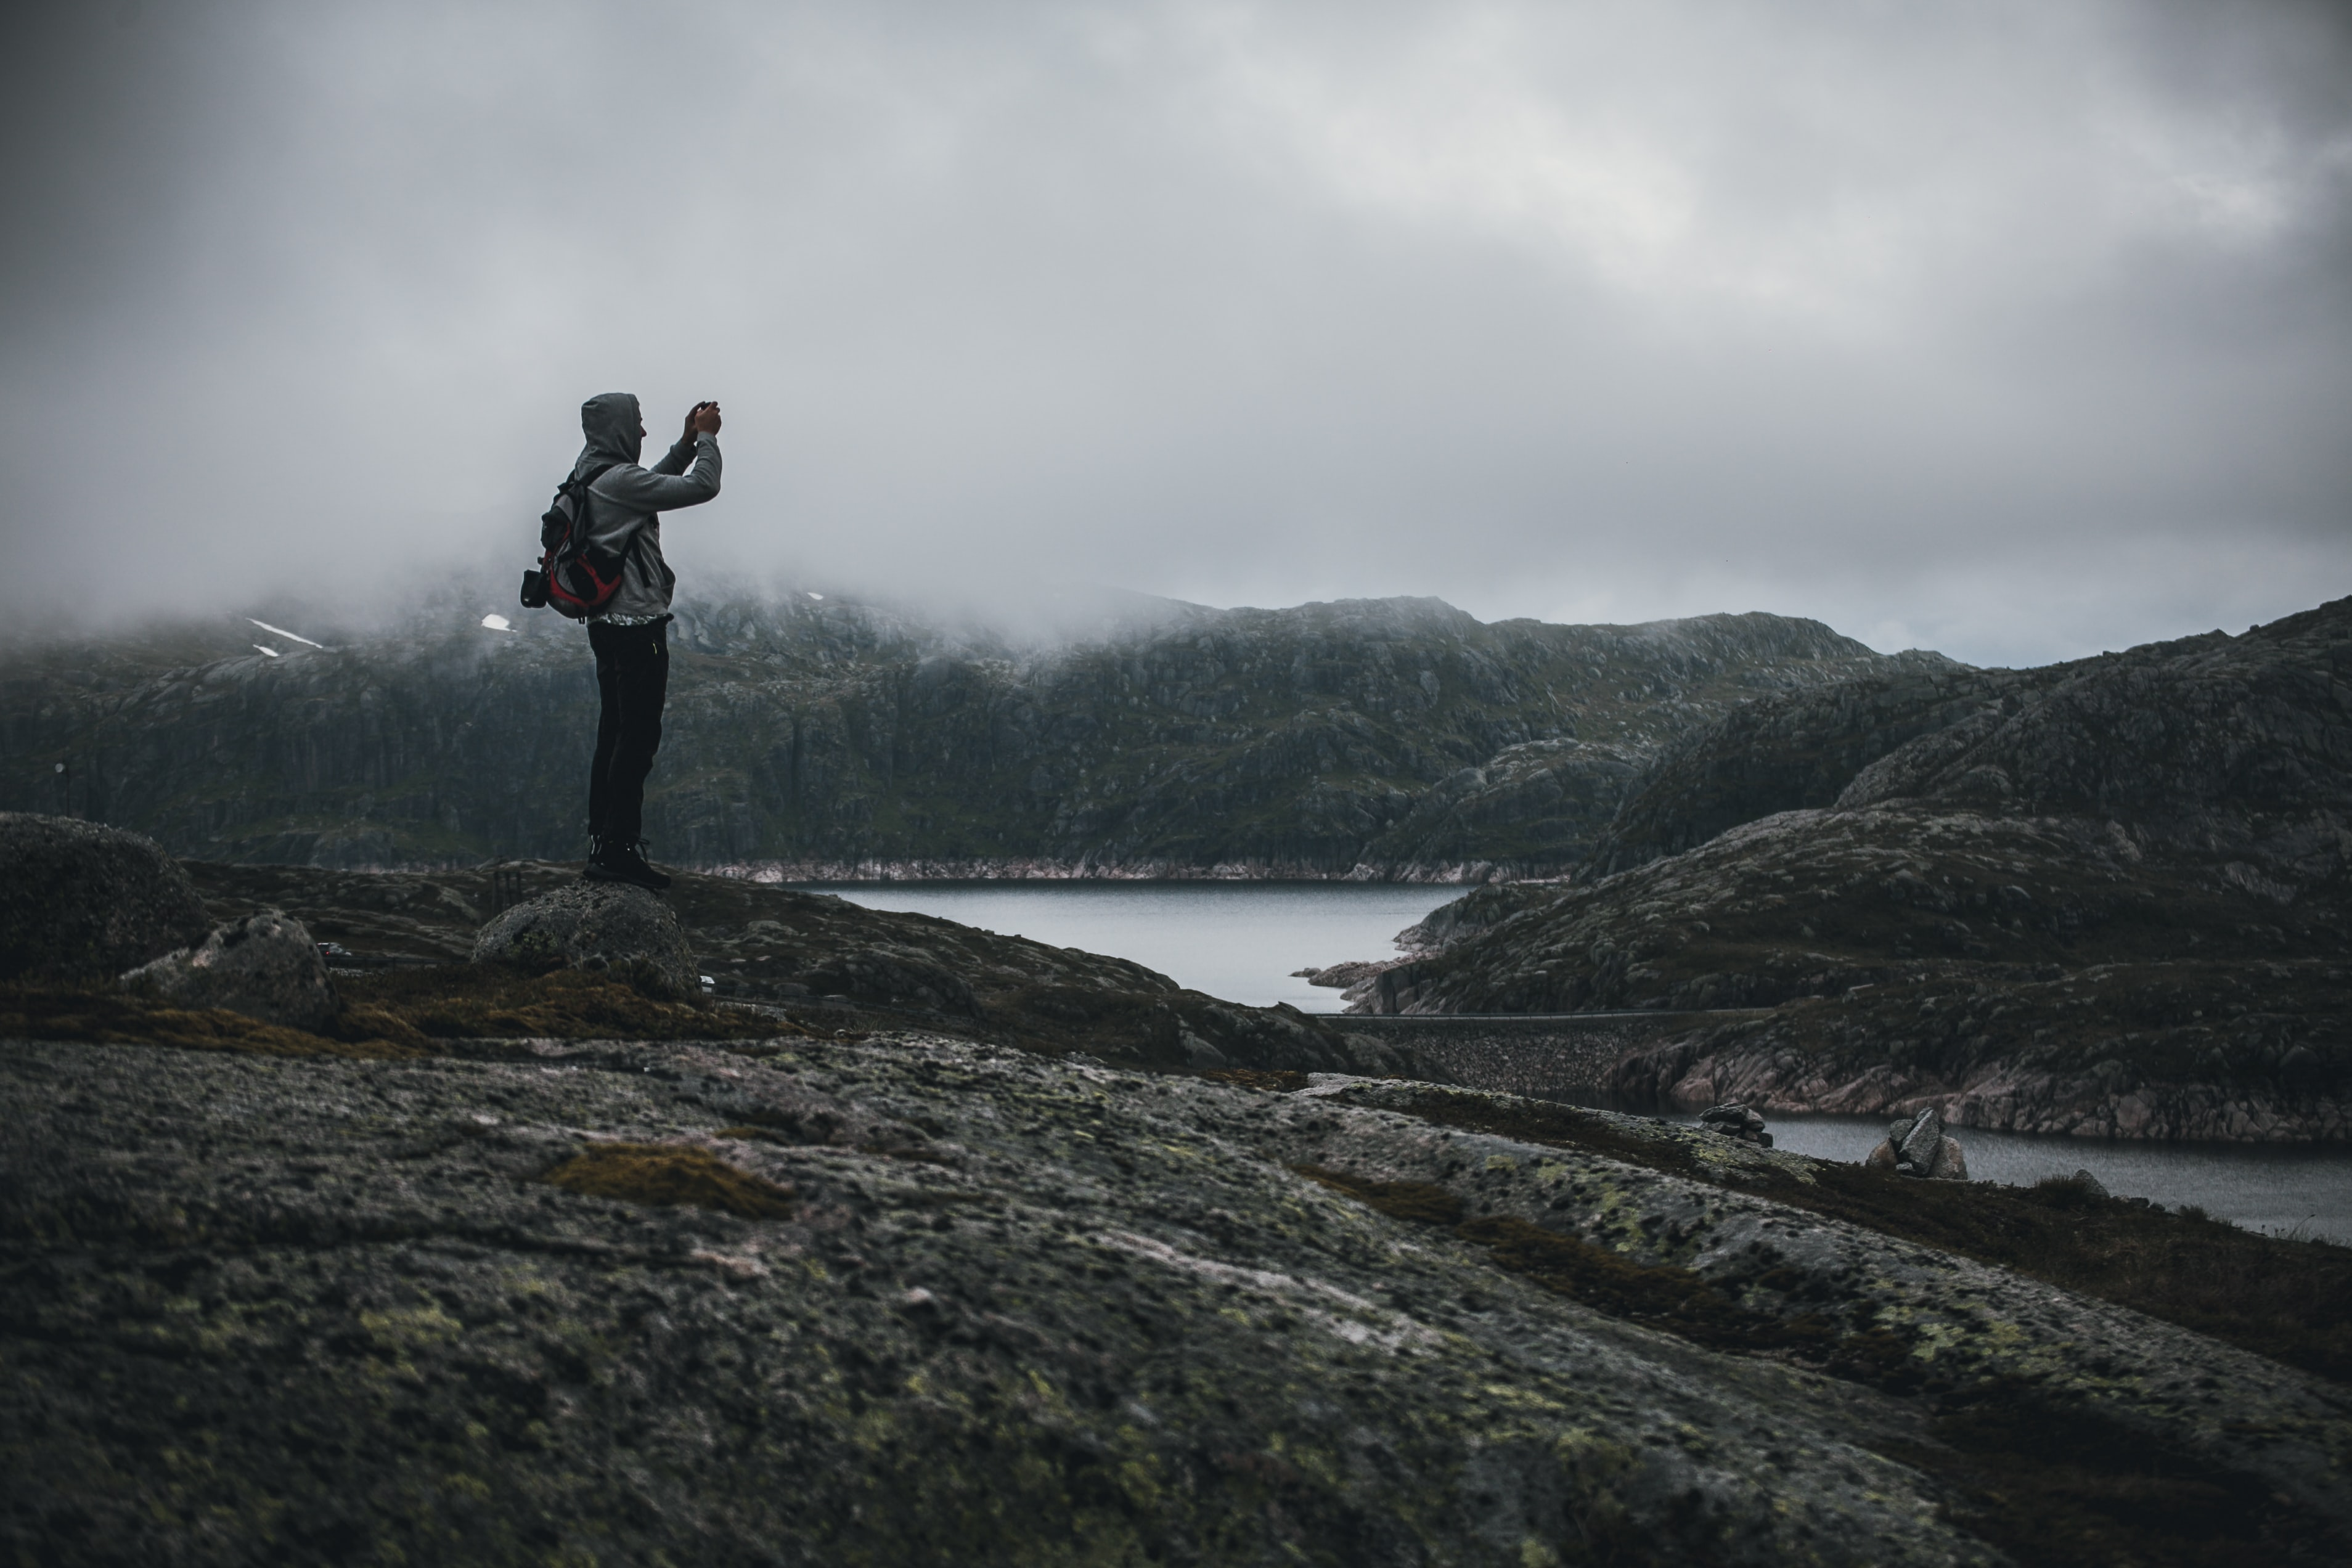 man standing on stones taking photo of mountain near body of water during foggy day